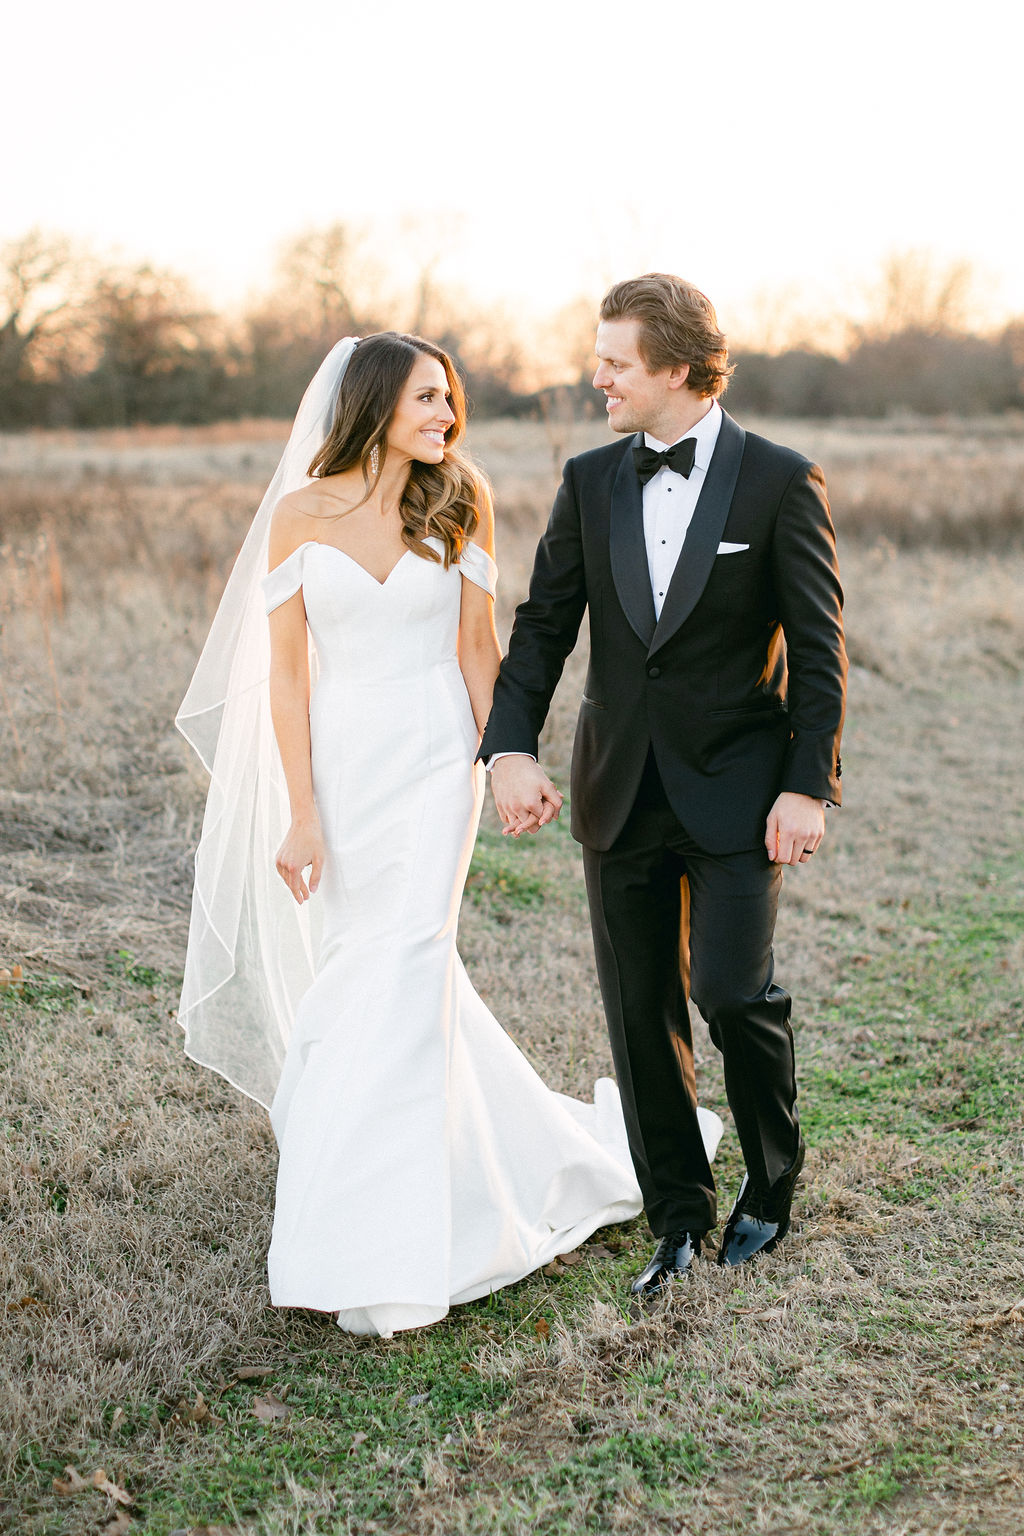 Off the shoulder wedding dress: White and Greenery Wedding at The Emerson by Alexa Kay Events